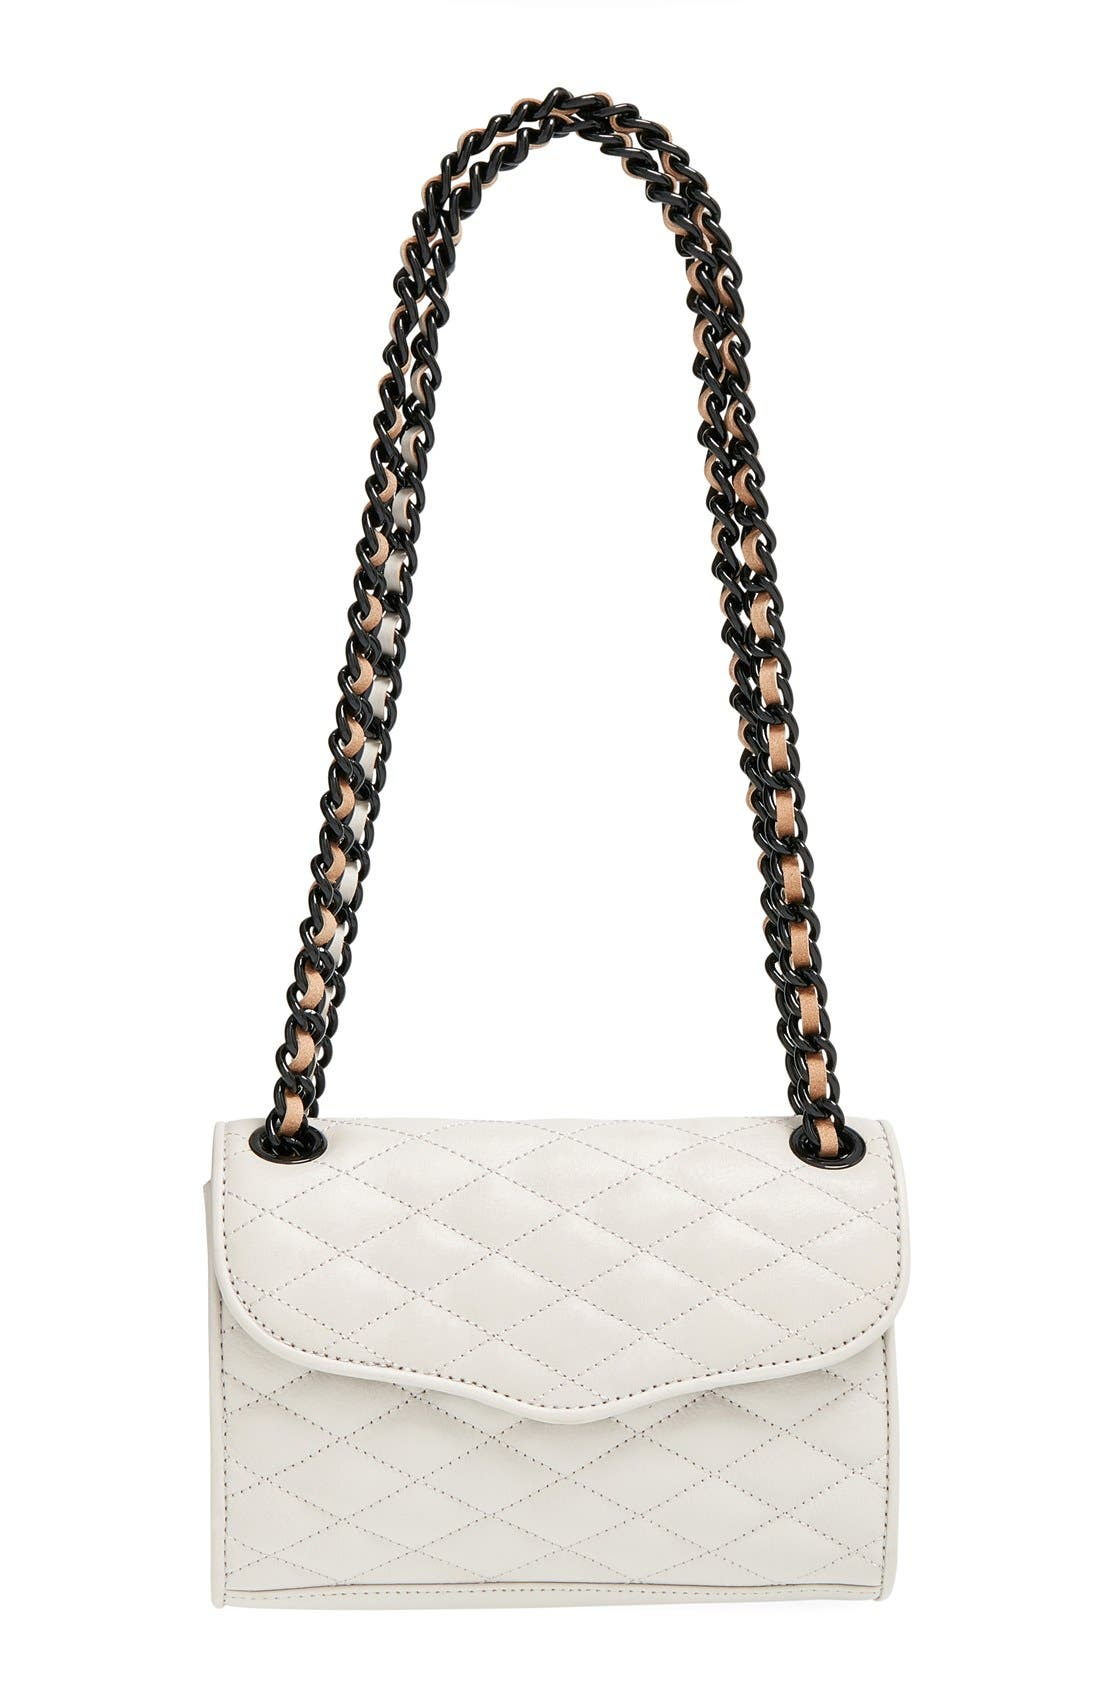 Alternate Image 1 Selected - Rebecca Minkoff 'Quilted Mini Affair' Convertible Crossbody Bag